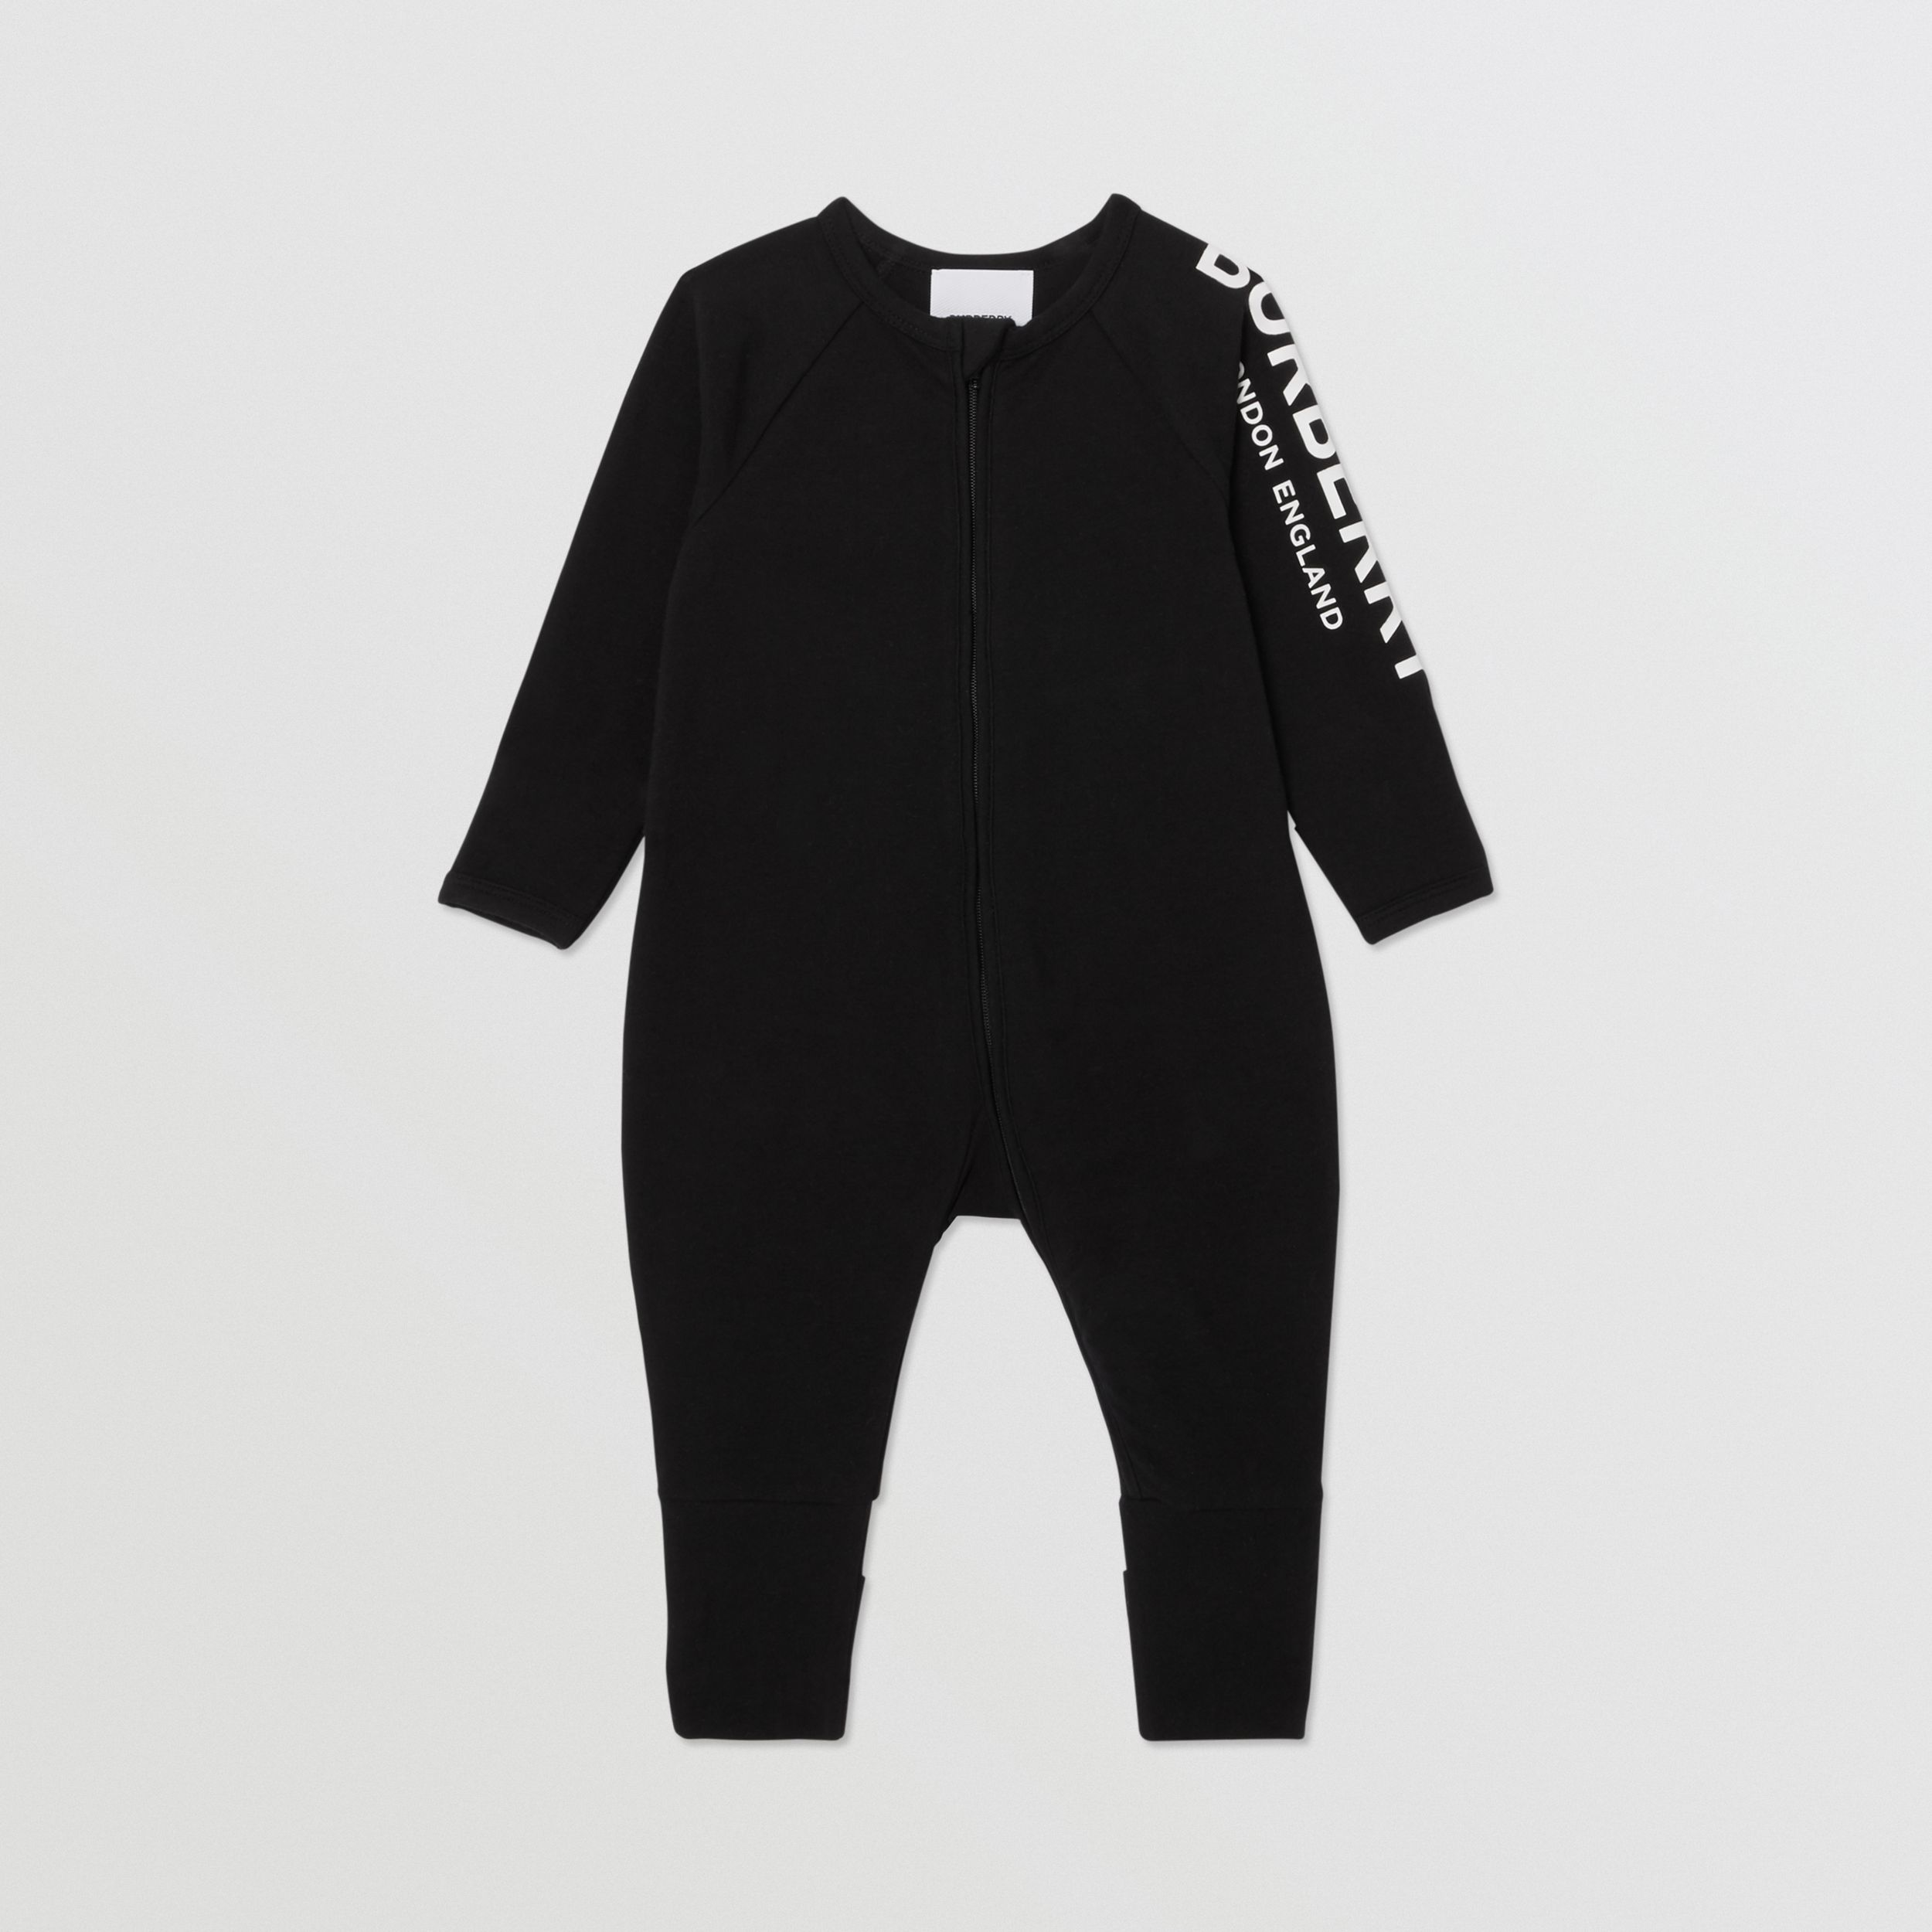 Logo Print Stretch Cotton Two-piece Baby Gift Set in Black - Children | Burberry - 3